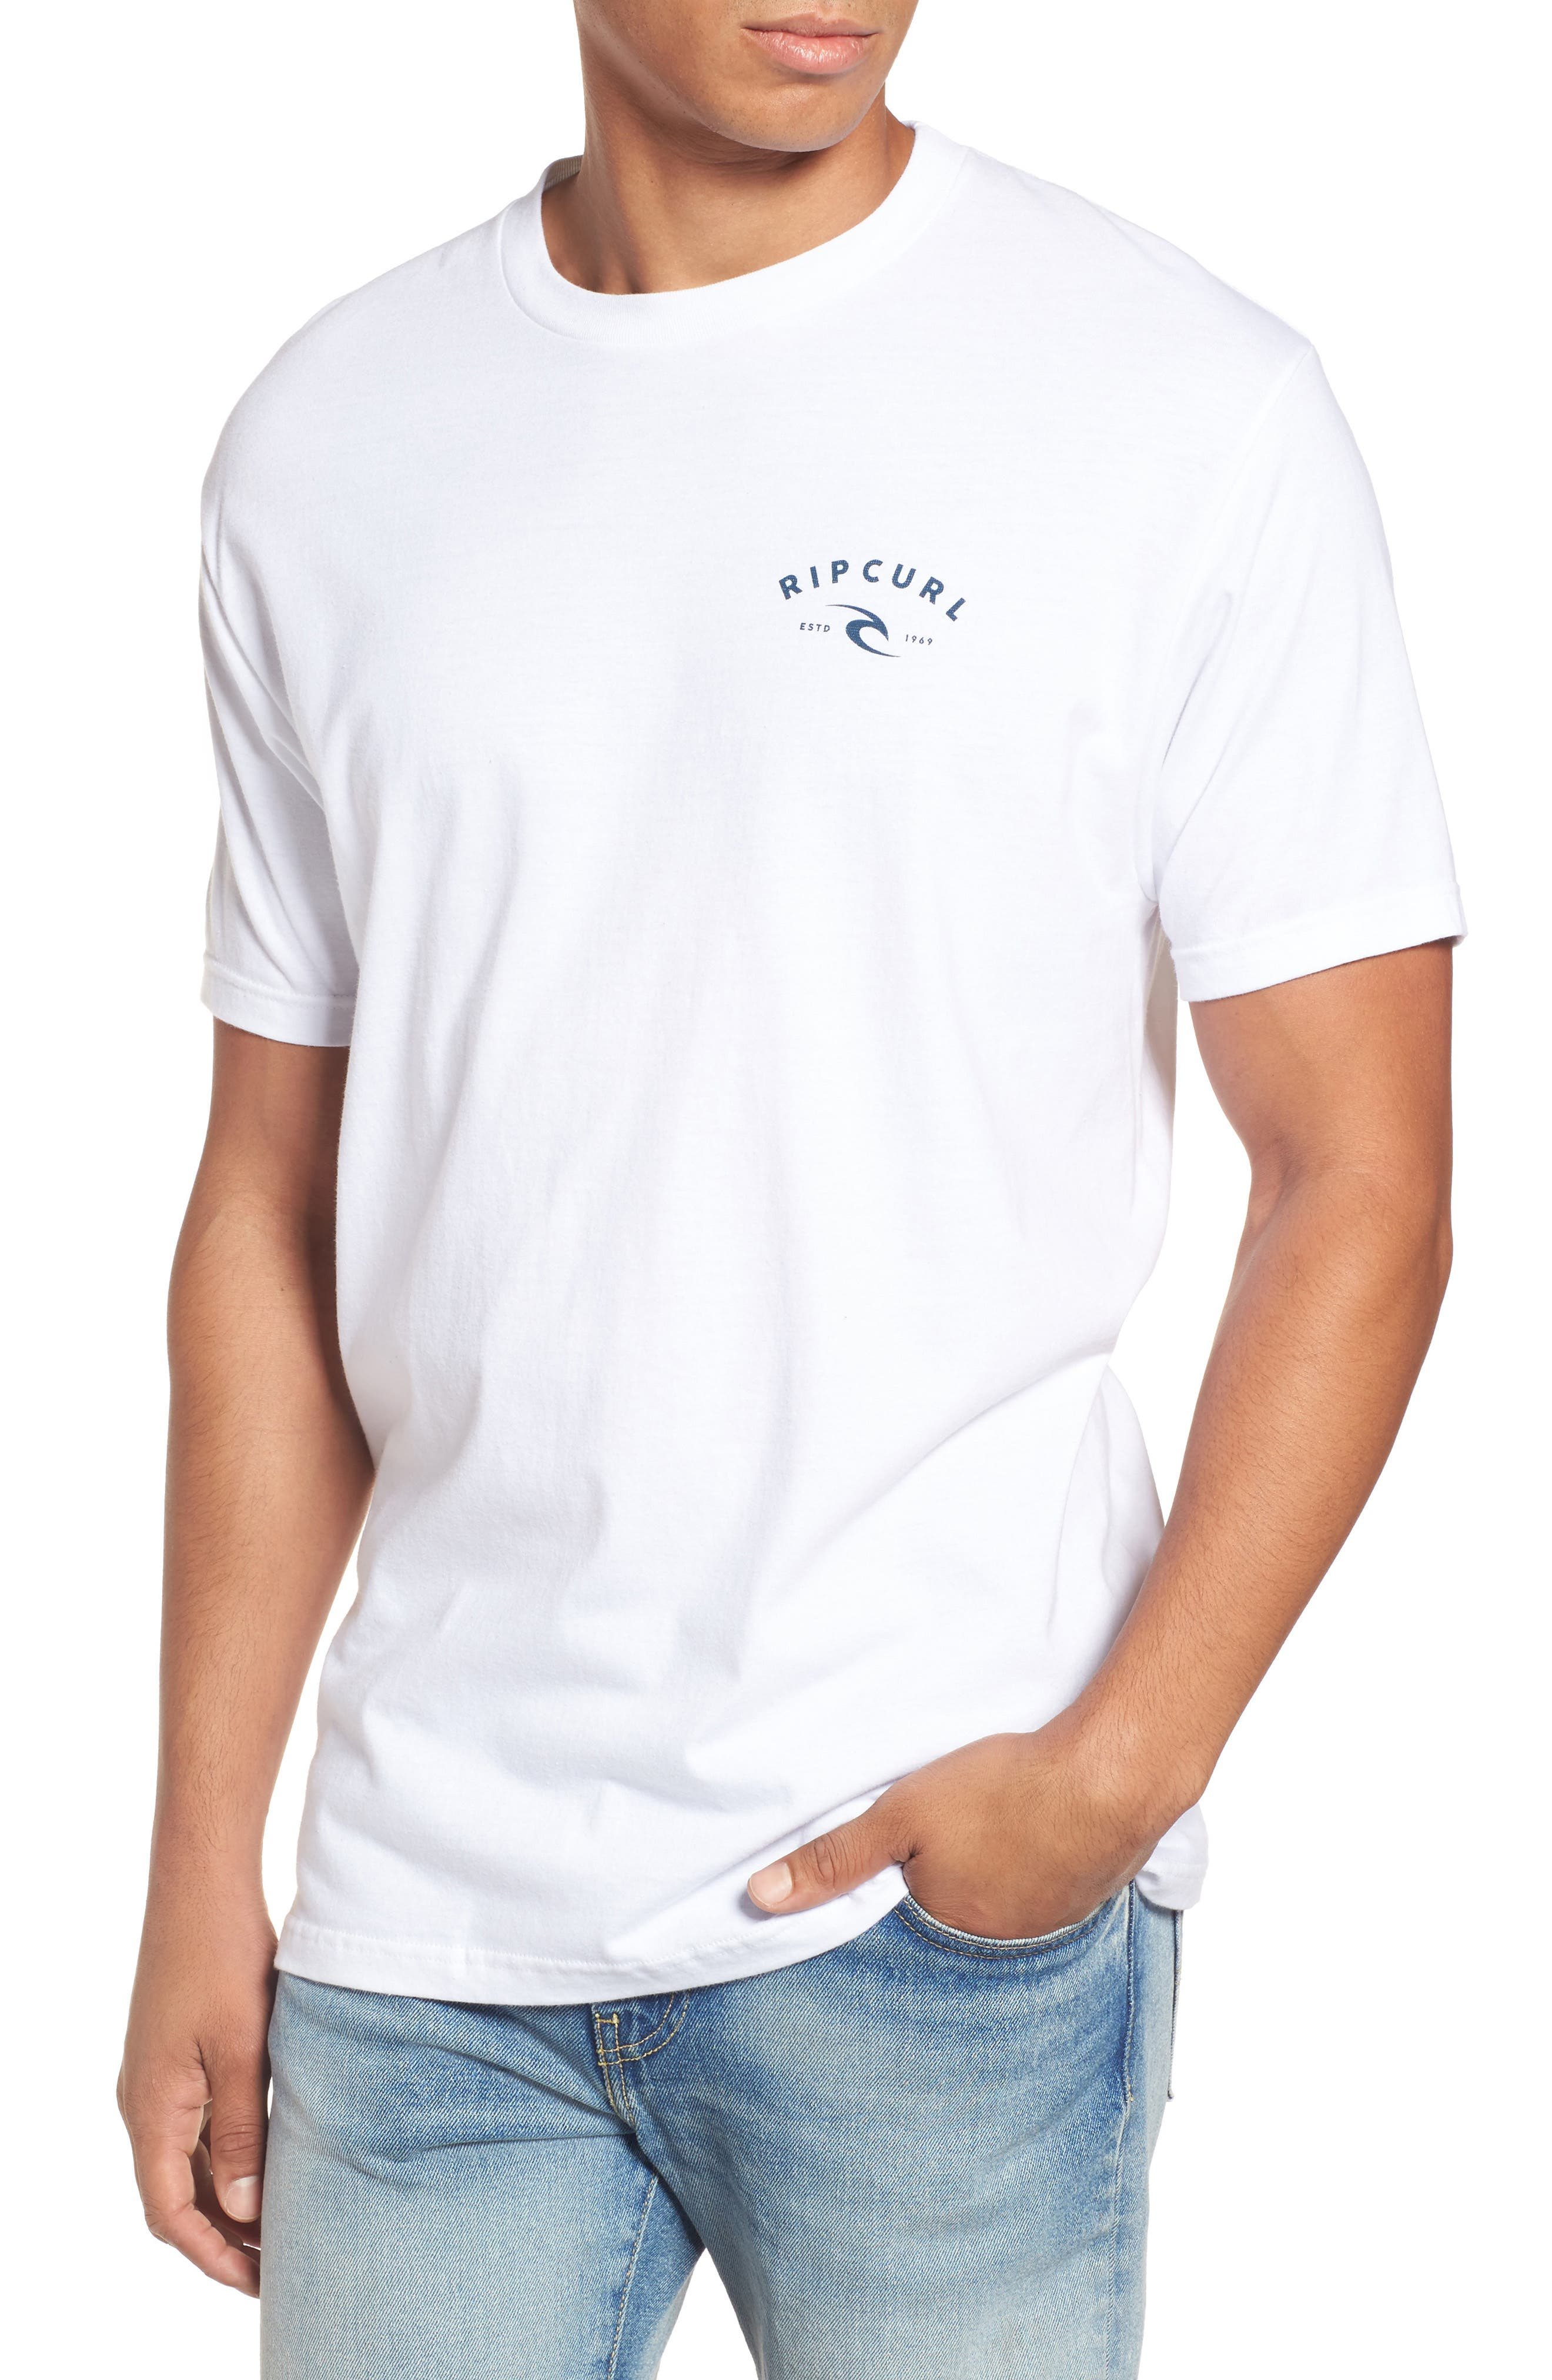 Main Image - Rip Curl Down South Heather Logo Graphic T-Shirt